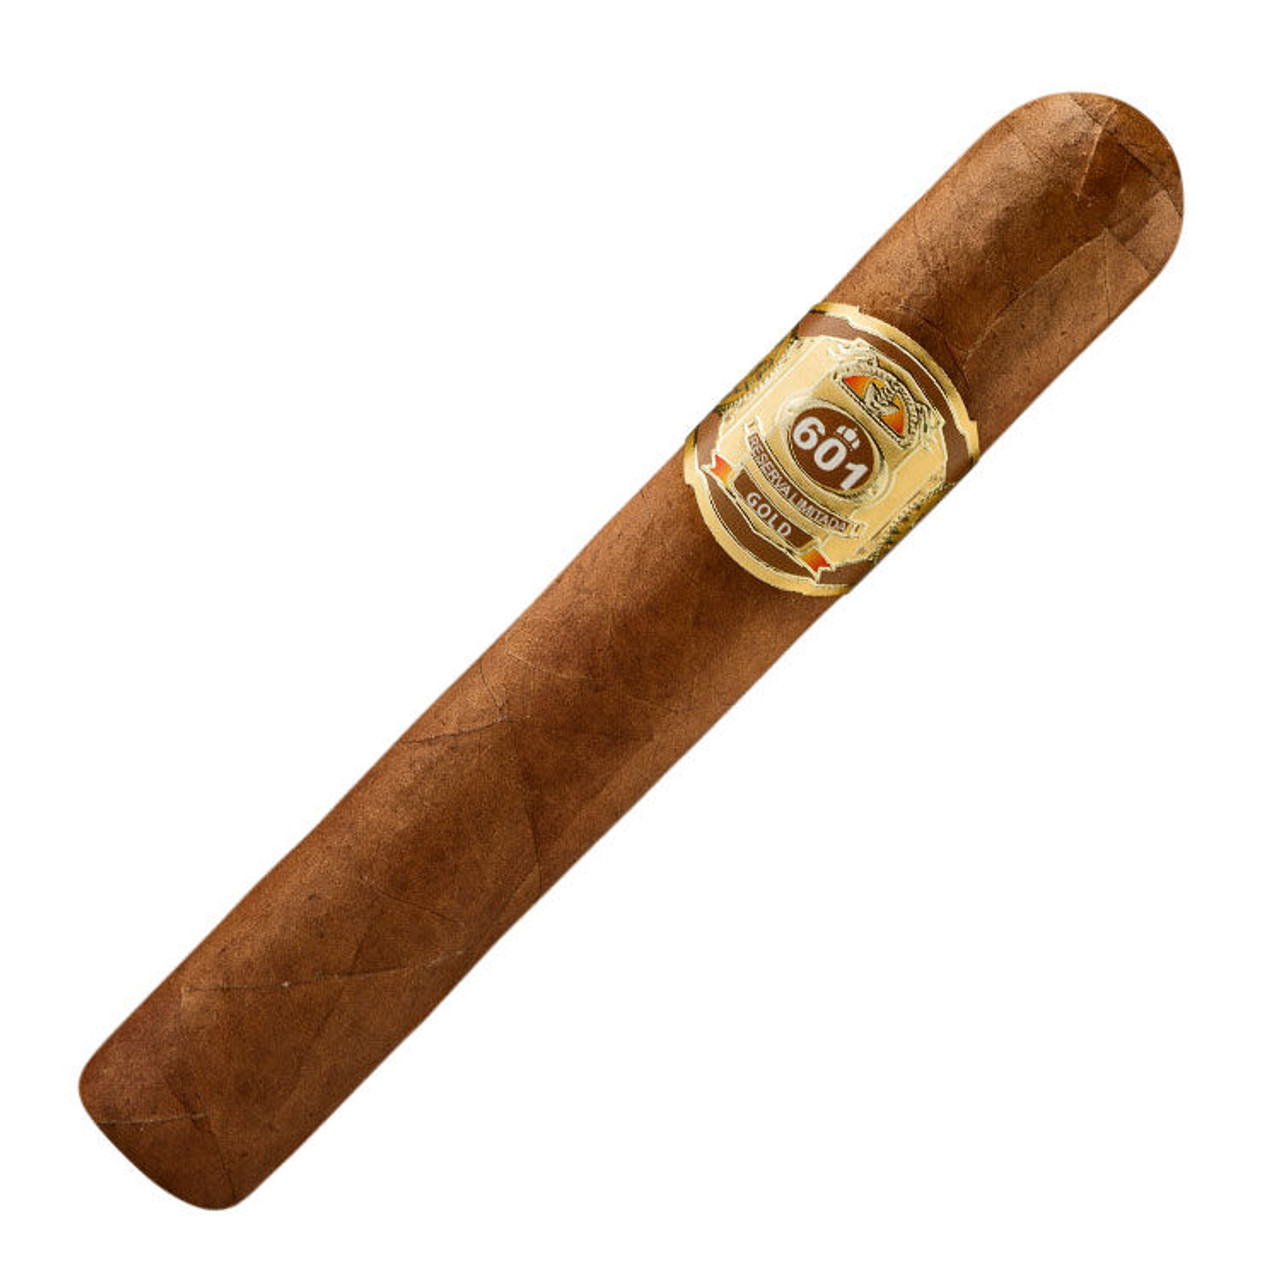 601 Gold Label Gordo Cigars - 6 x 60 (Box of 10)